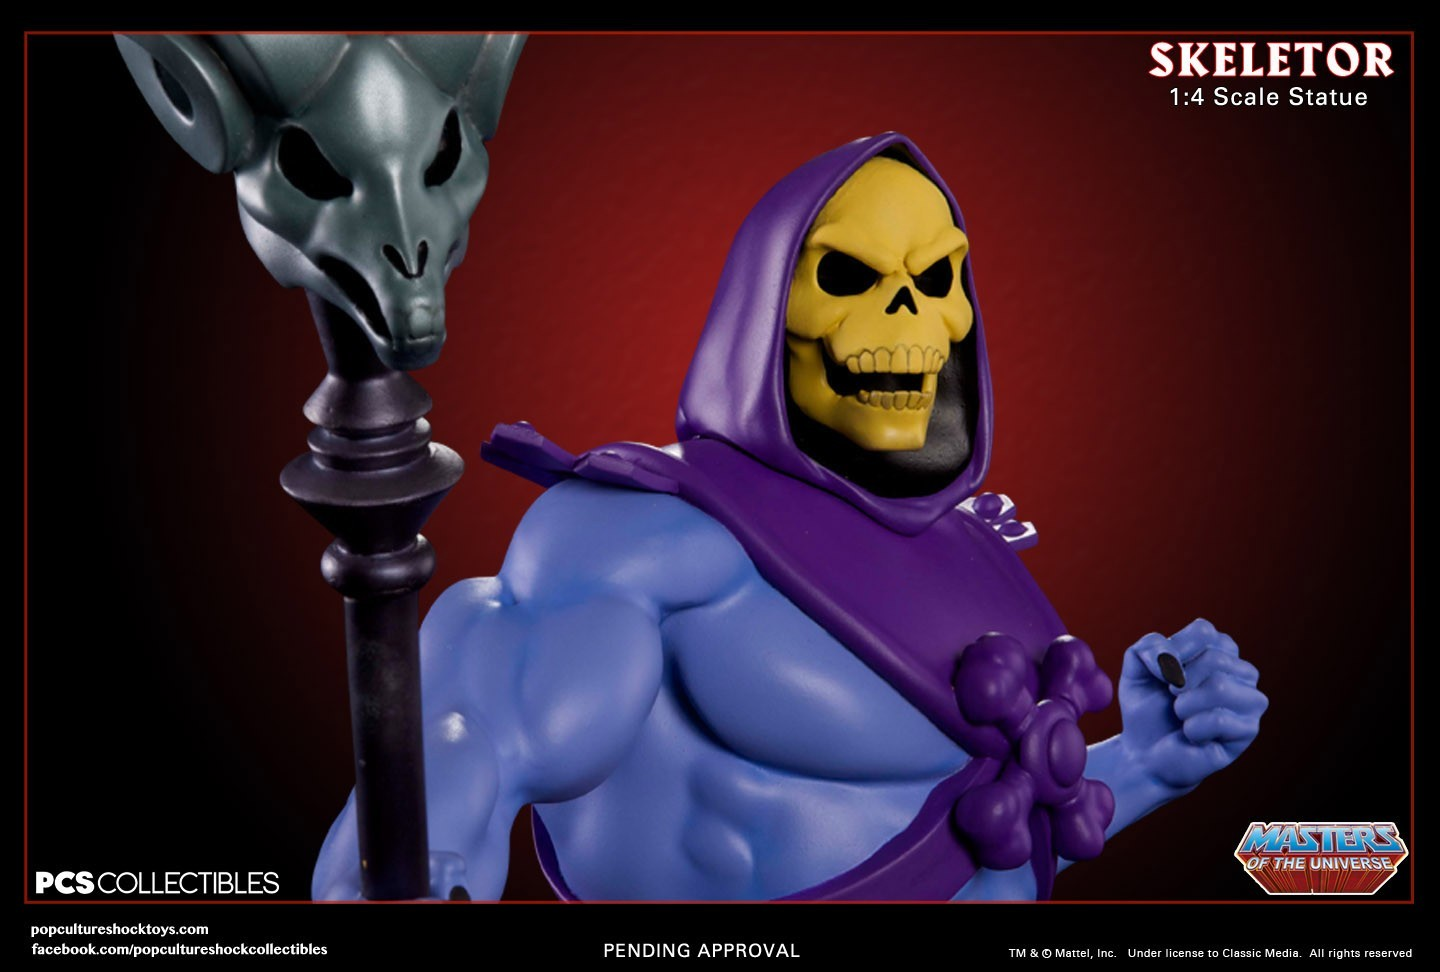 Alejandro pereira skeletor media u 1